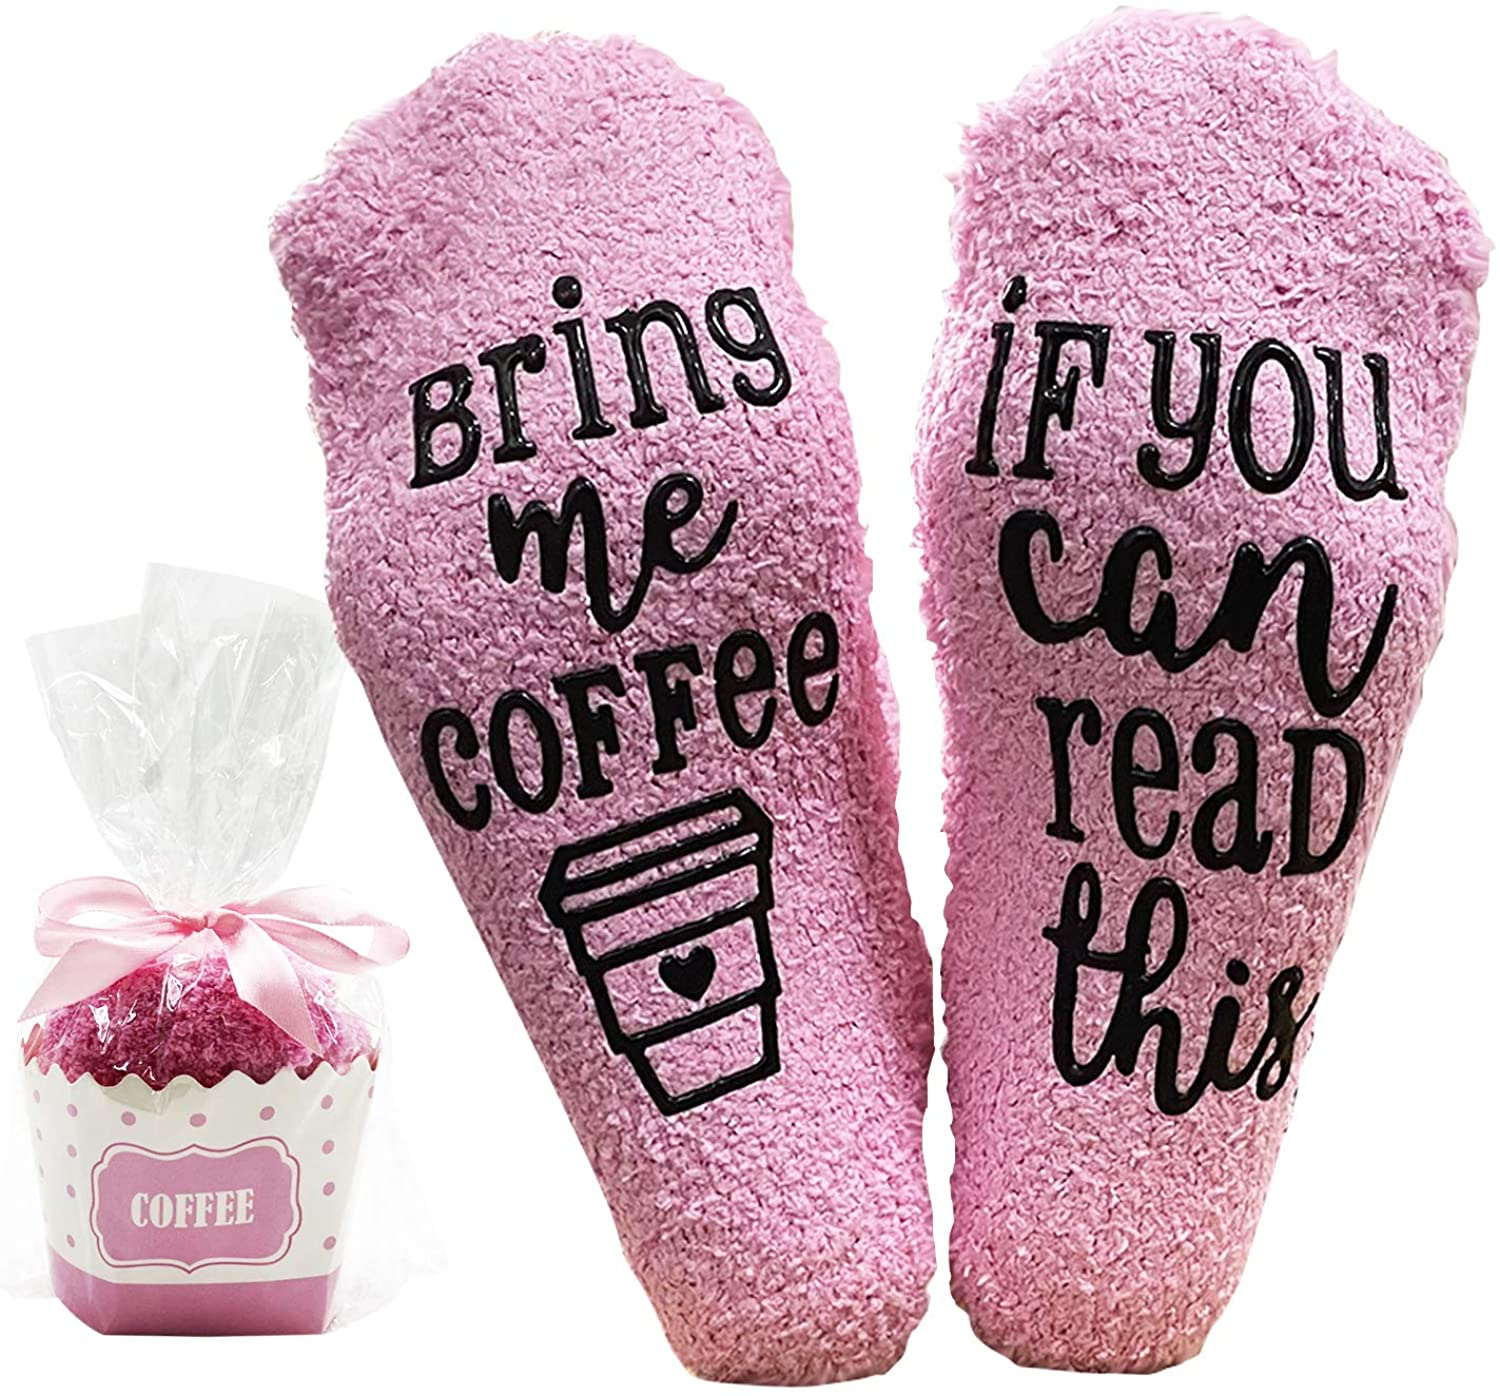 Sportsvoutdoors If You Can Read This Bring Me Coffee Socks, Novelty Fuzzy Socks with Cupcake Packaging, Birthday Party Idea Accessories for Women Mother Wife